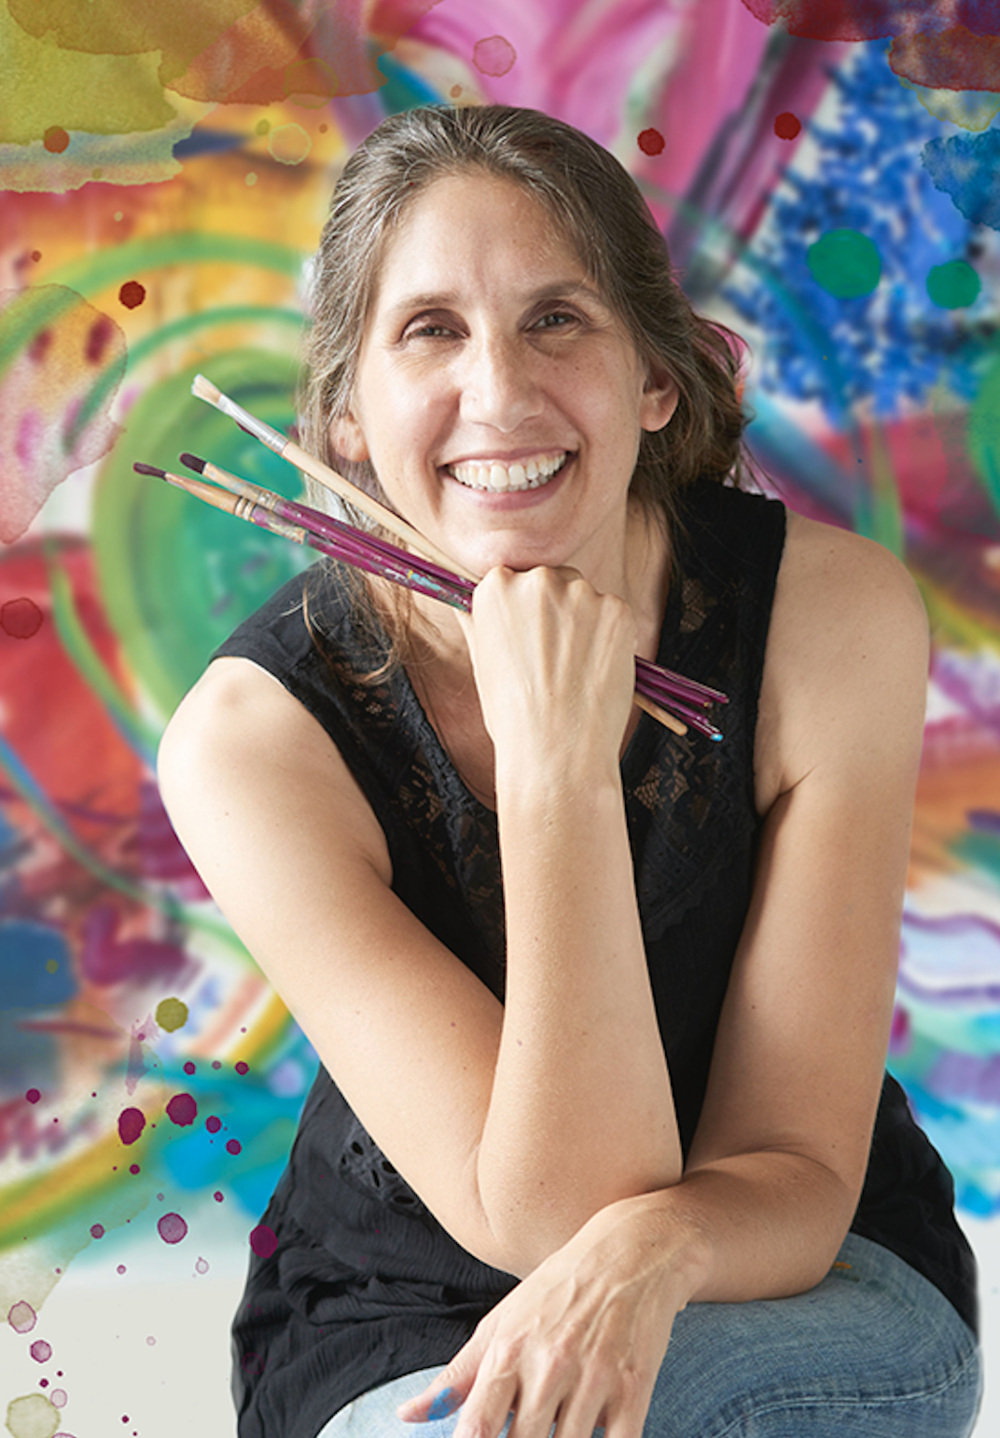 Special guest teacher, Larissa Davis! - Larissa is an Artist and Creatively Fit Coach teaching Soul Path Art, a fun collection of anyone-can-do-this creativity exercises to build right-brain power, connect us to our intuition, and catalyze personal growth.